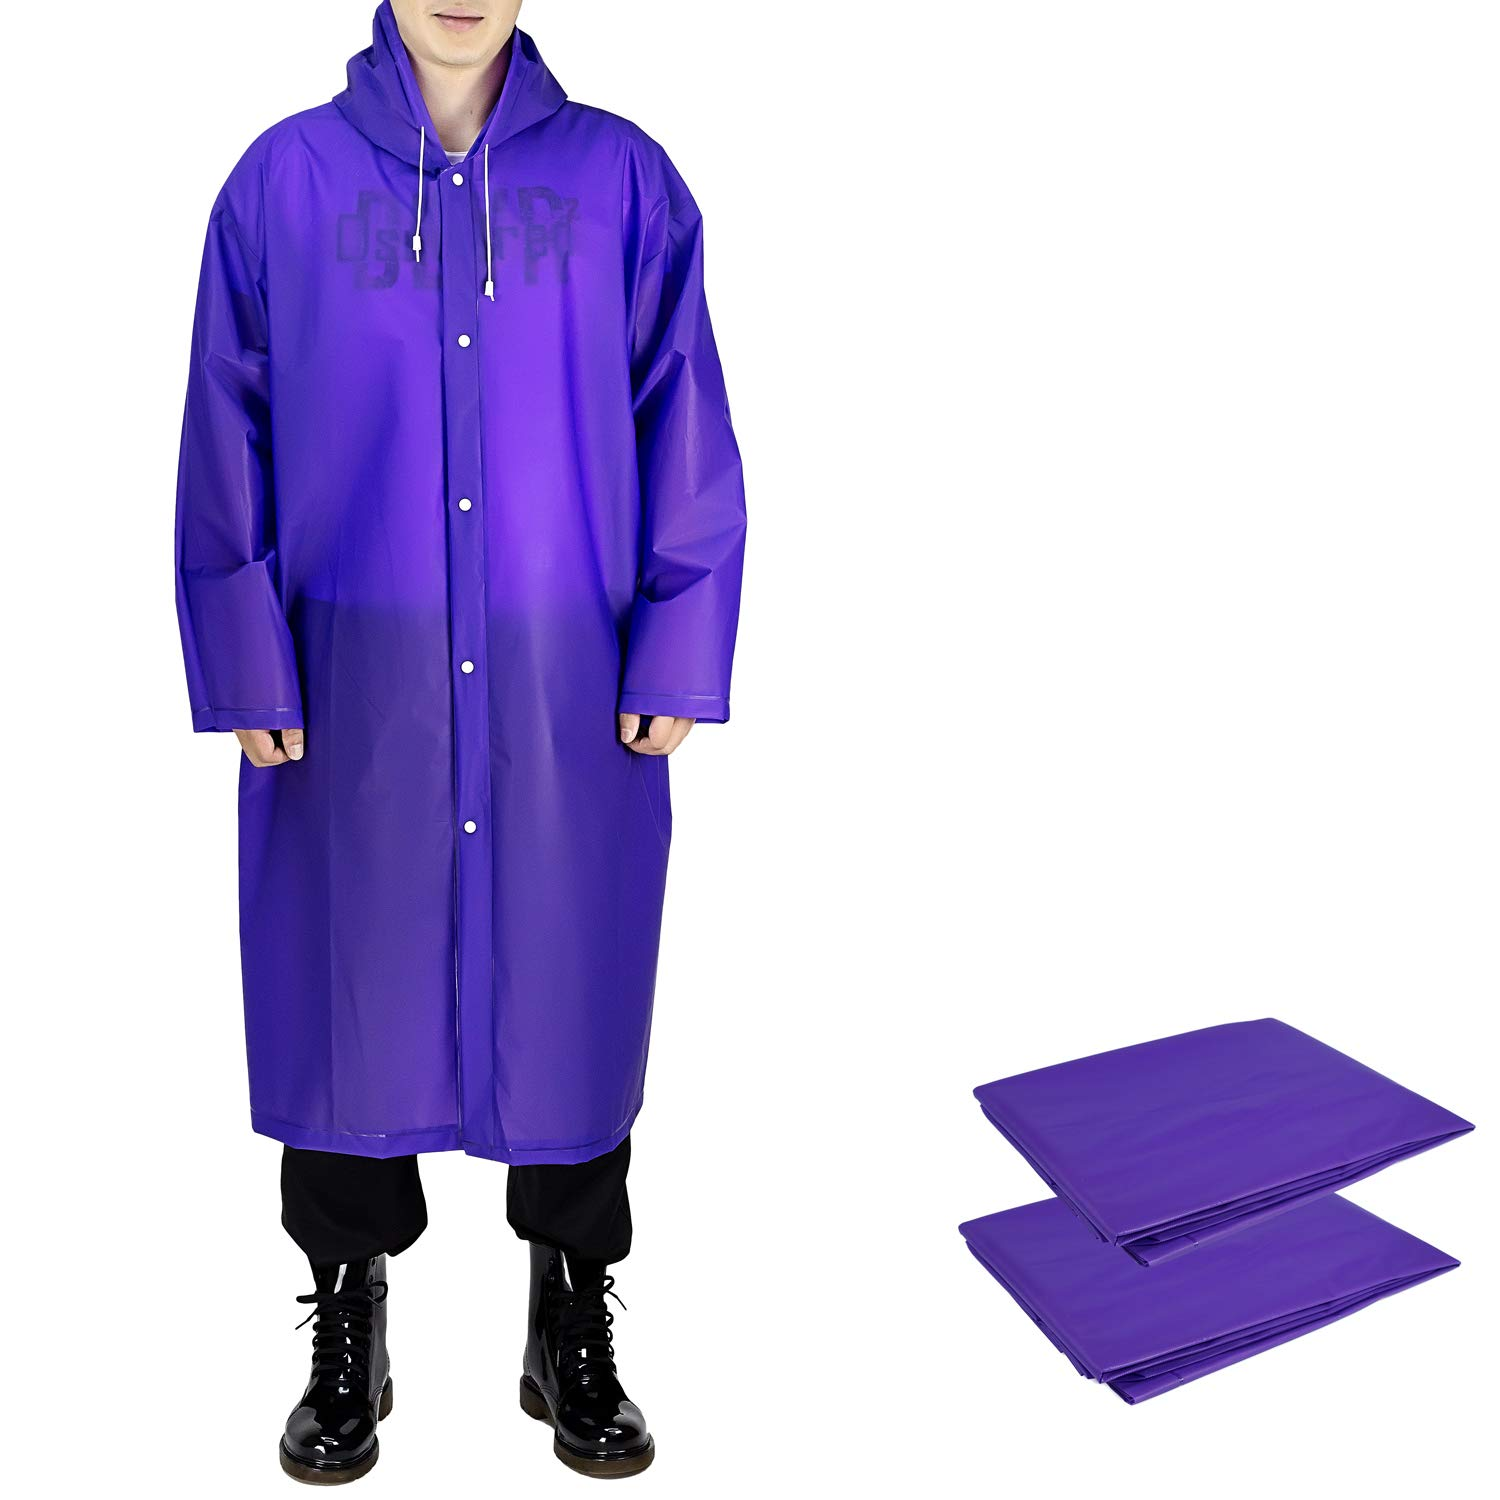 Rain Ponchos 2 Packs for Adults with Drawstring Hood and Sleeves - for Hiking, Backpacking, Camping or Traveling (Purple)